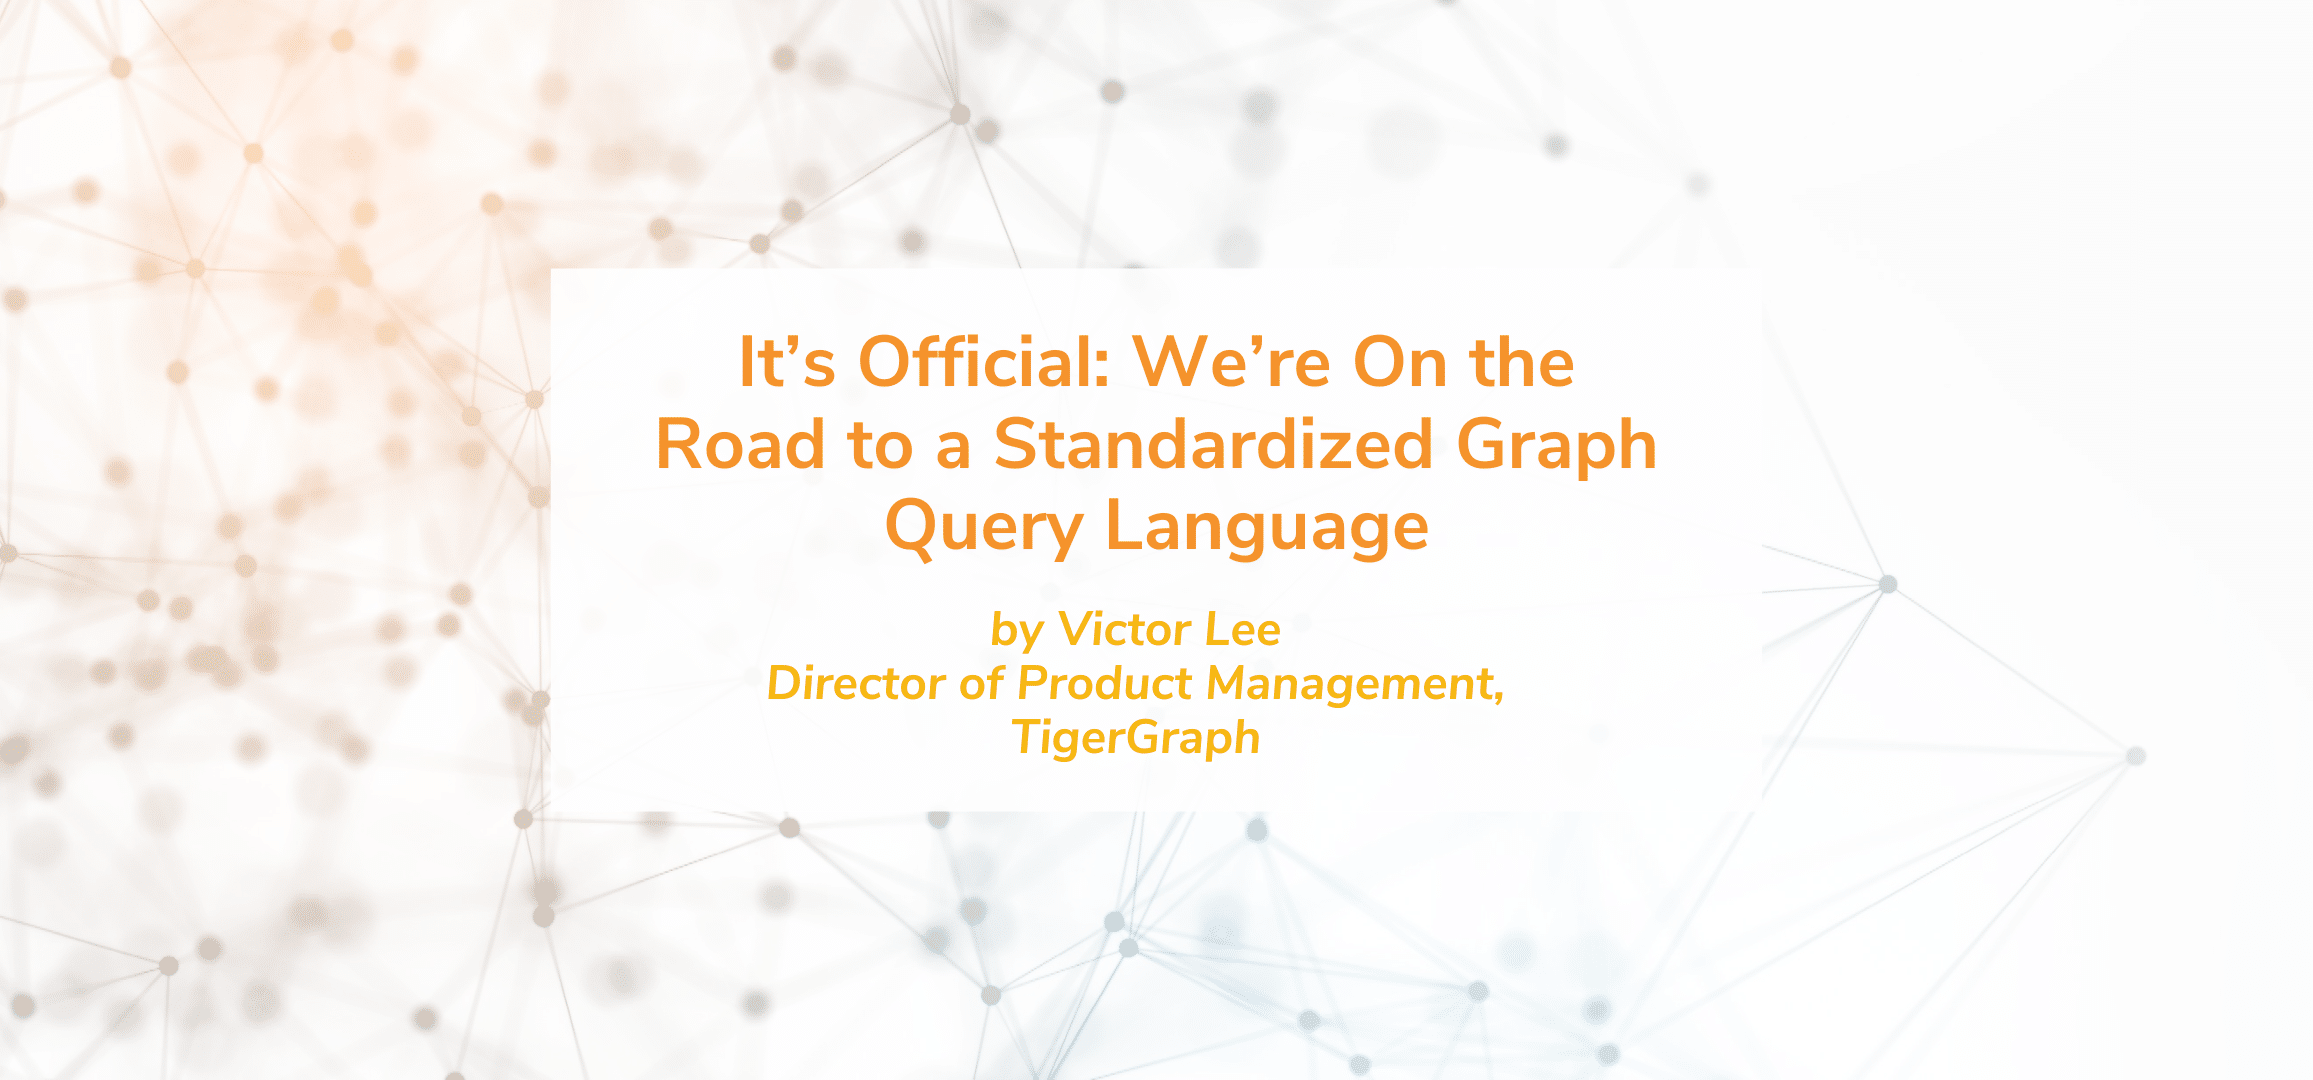 It's Official: We're On the Road to a Standardized Graph Query Language